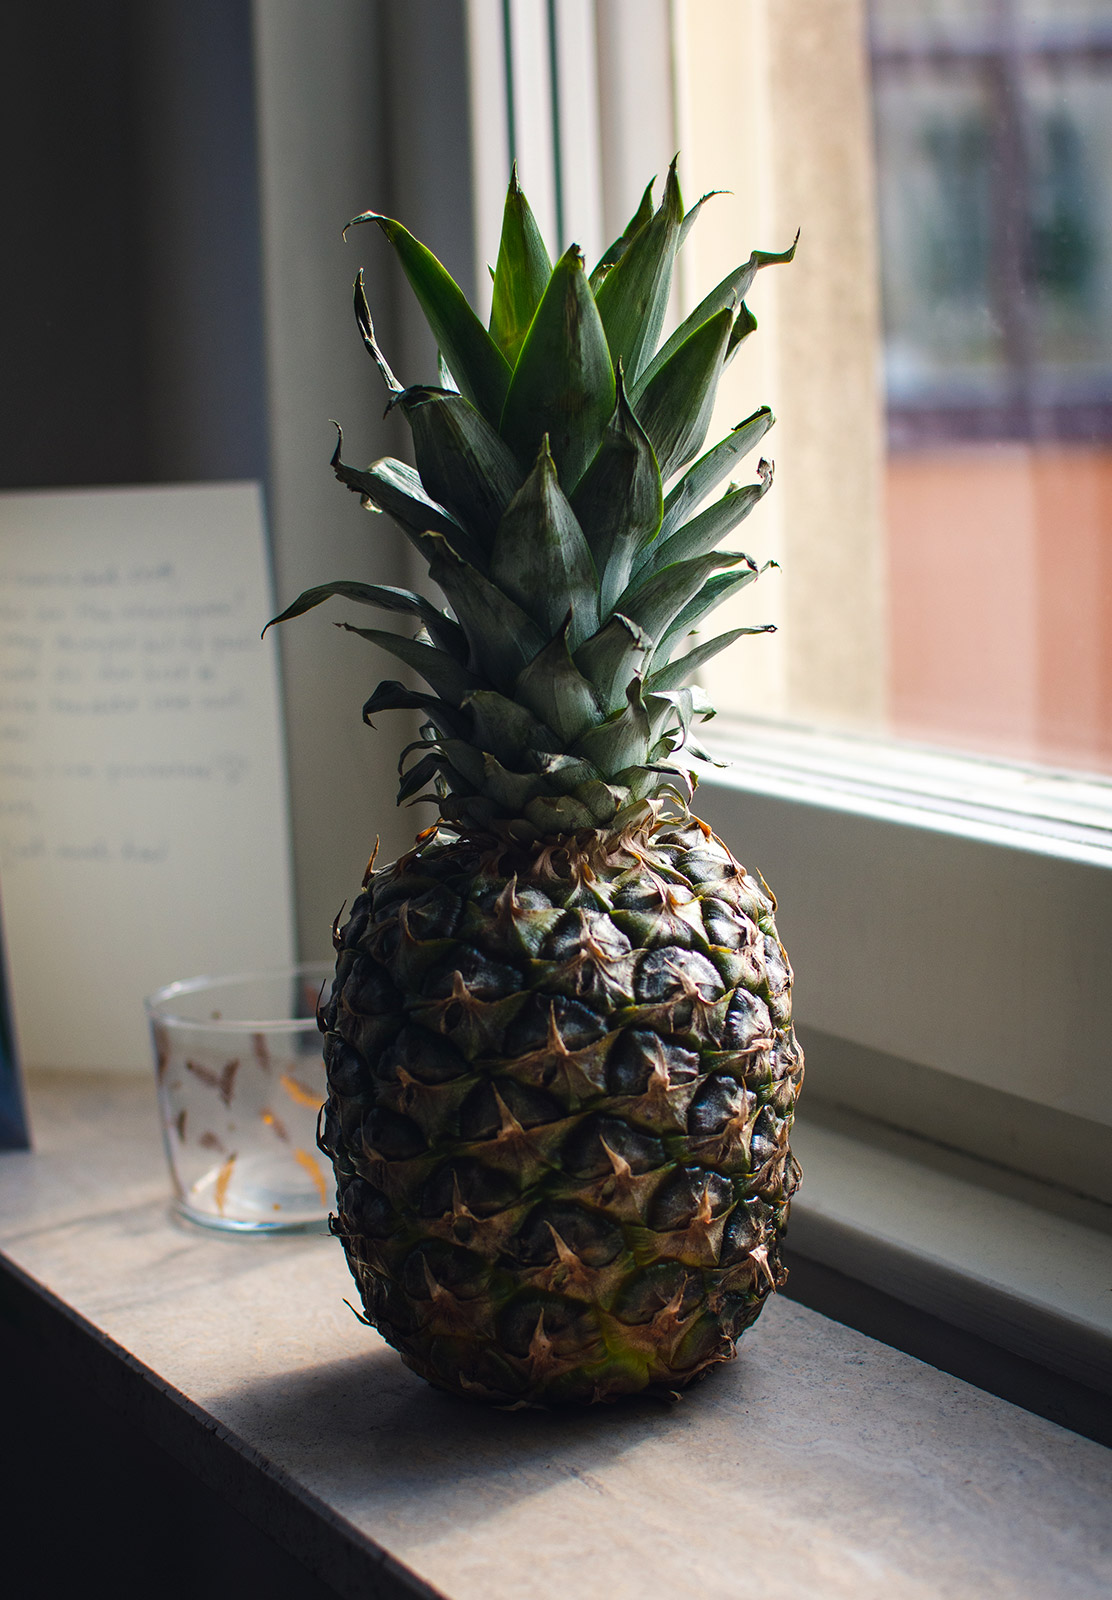 Pineapple on windowsill